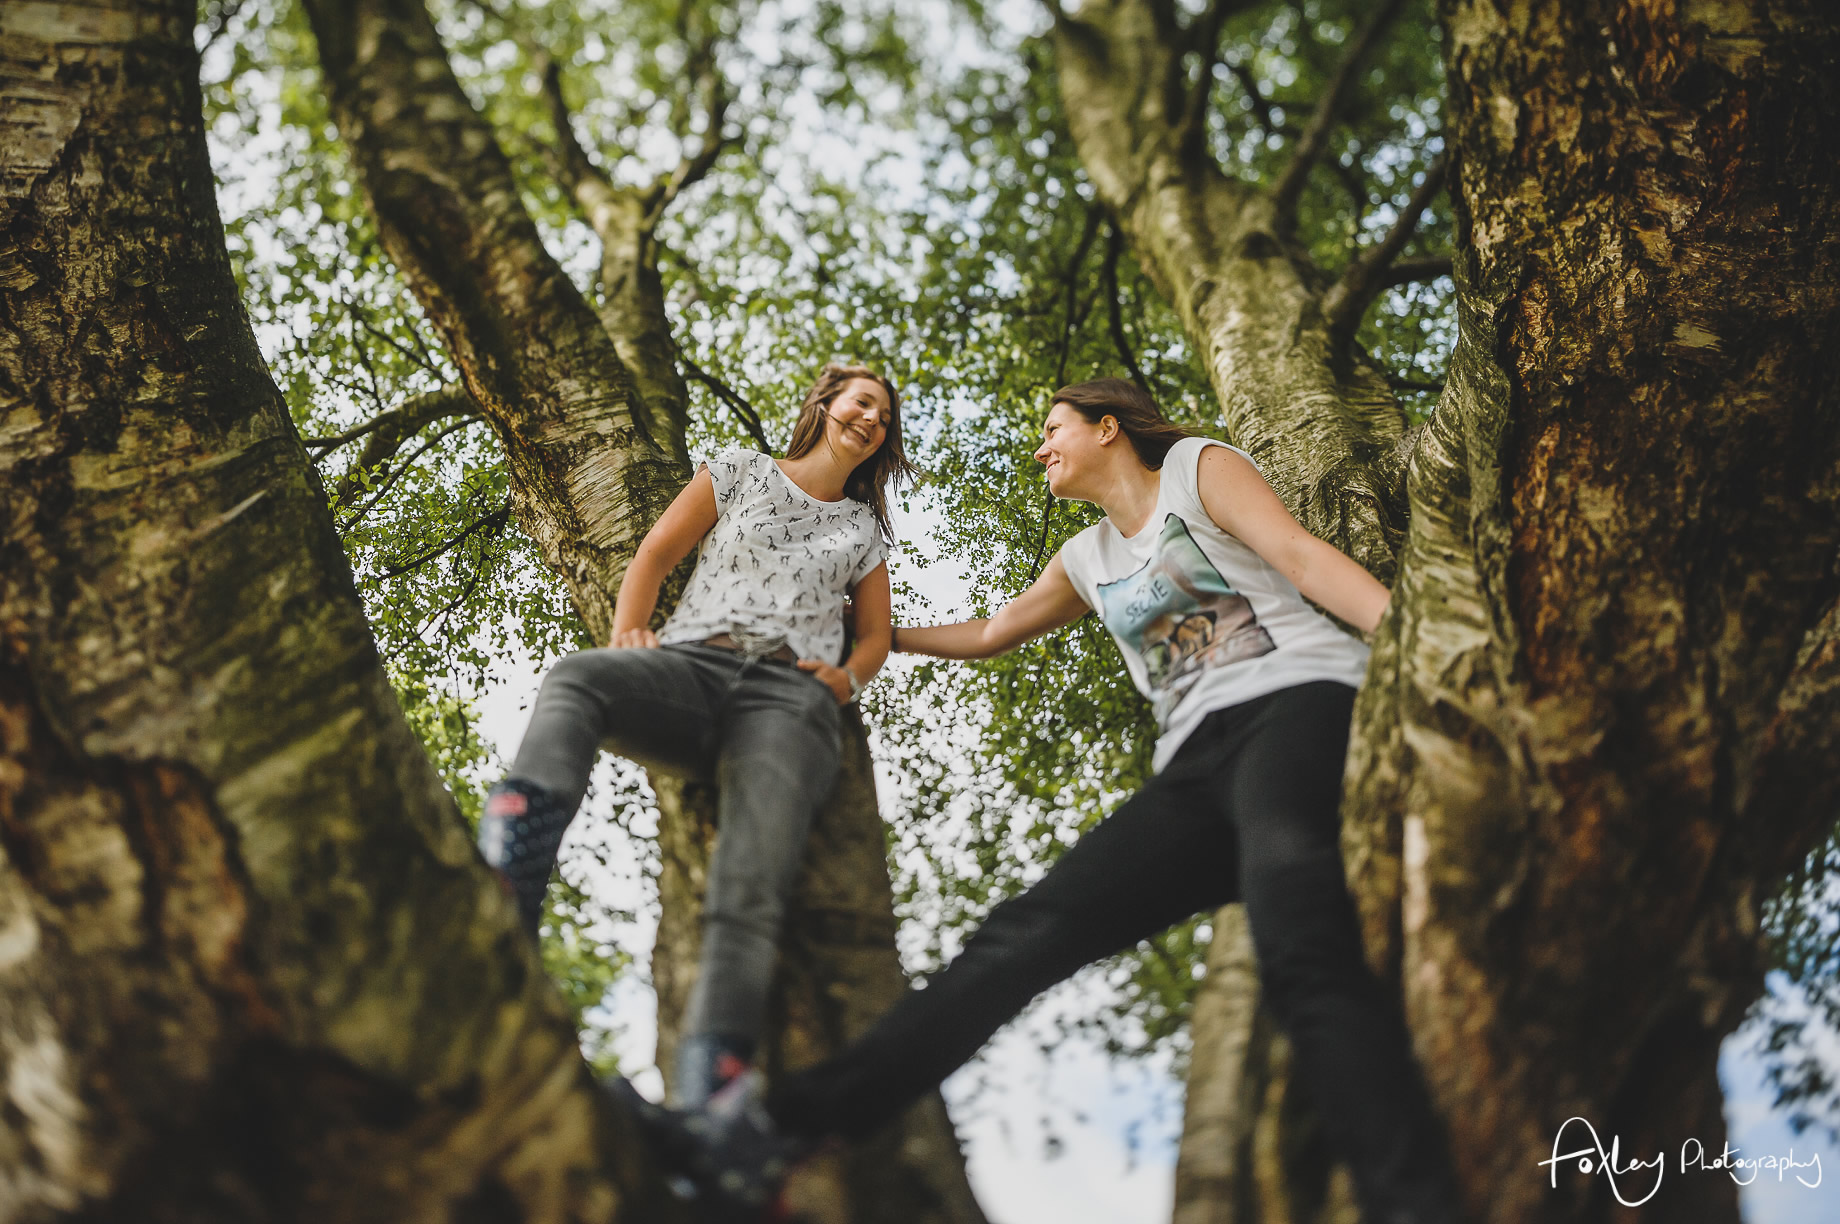 Fran-and-Eli-Pre-Wedding-Shoot-at-Heaton-Park-007